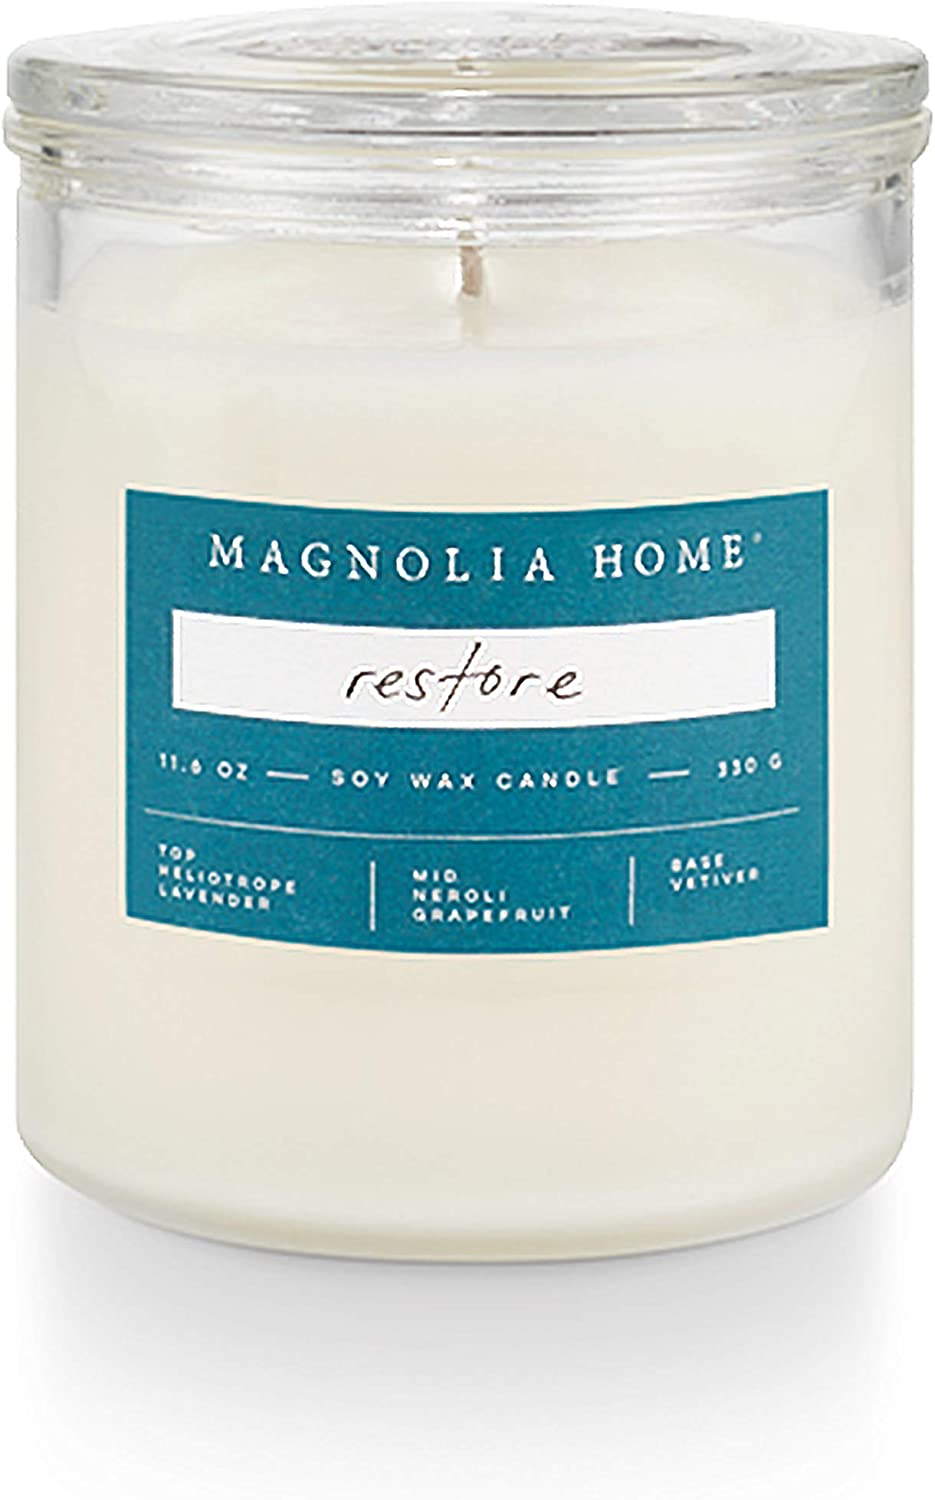 Magnolia Home Restore Lidded-Glass Candle Home Decor By Joanna Gaines